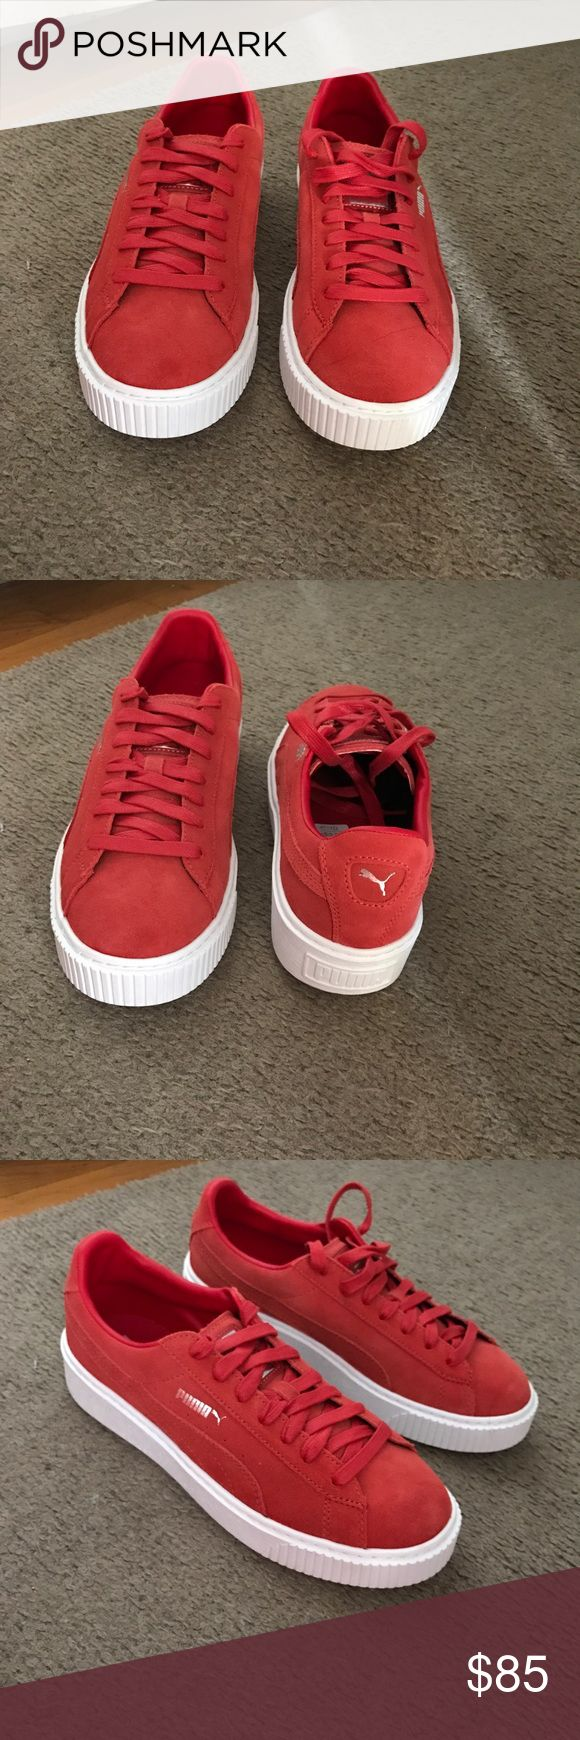 Suede Platform Pumas (Red) Red suede Platform Pumas w/ silver puma sign and white bottom. BRAND NEW, never worn!!!!!!!!!! These do not come with puma box. Puma Shoes Sneakers